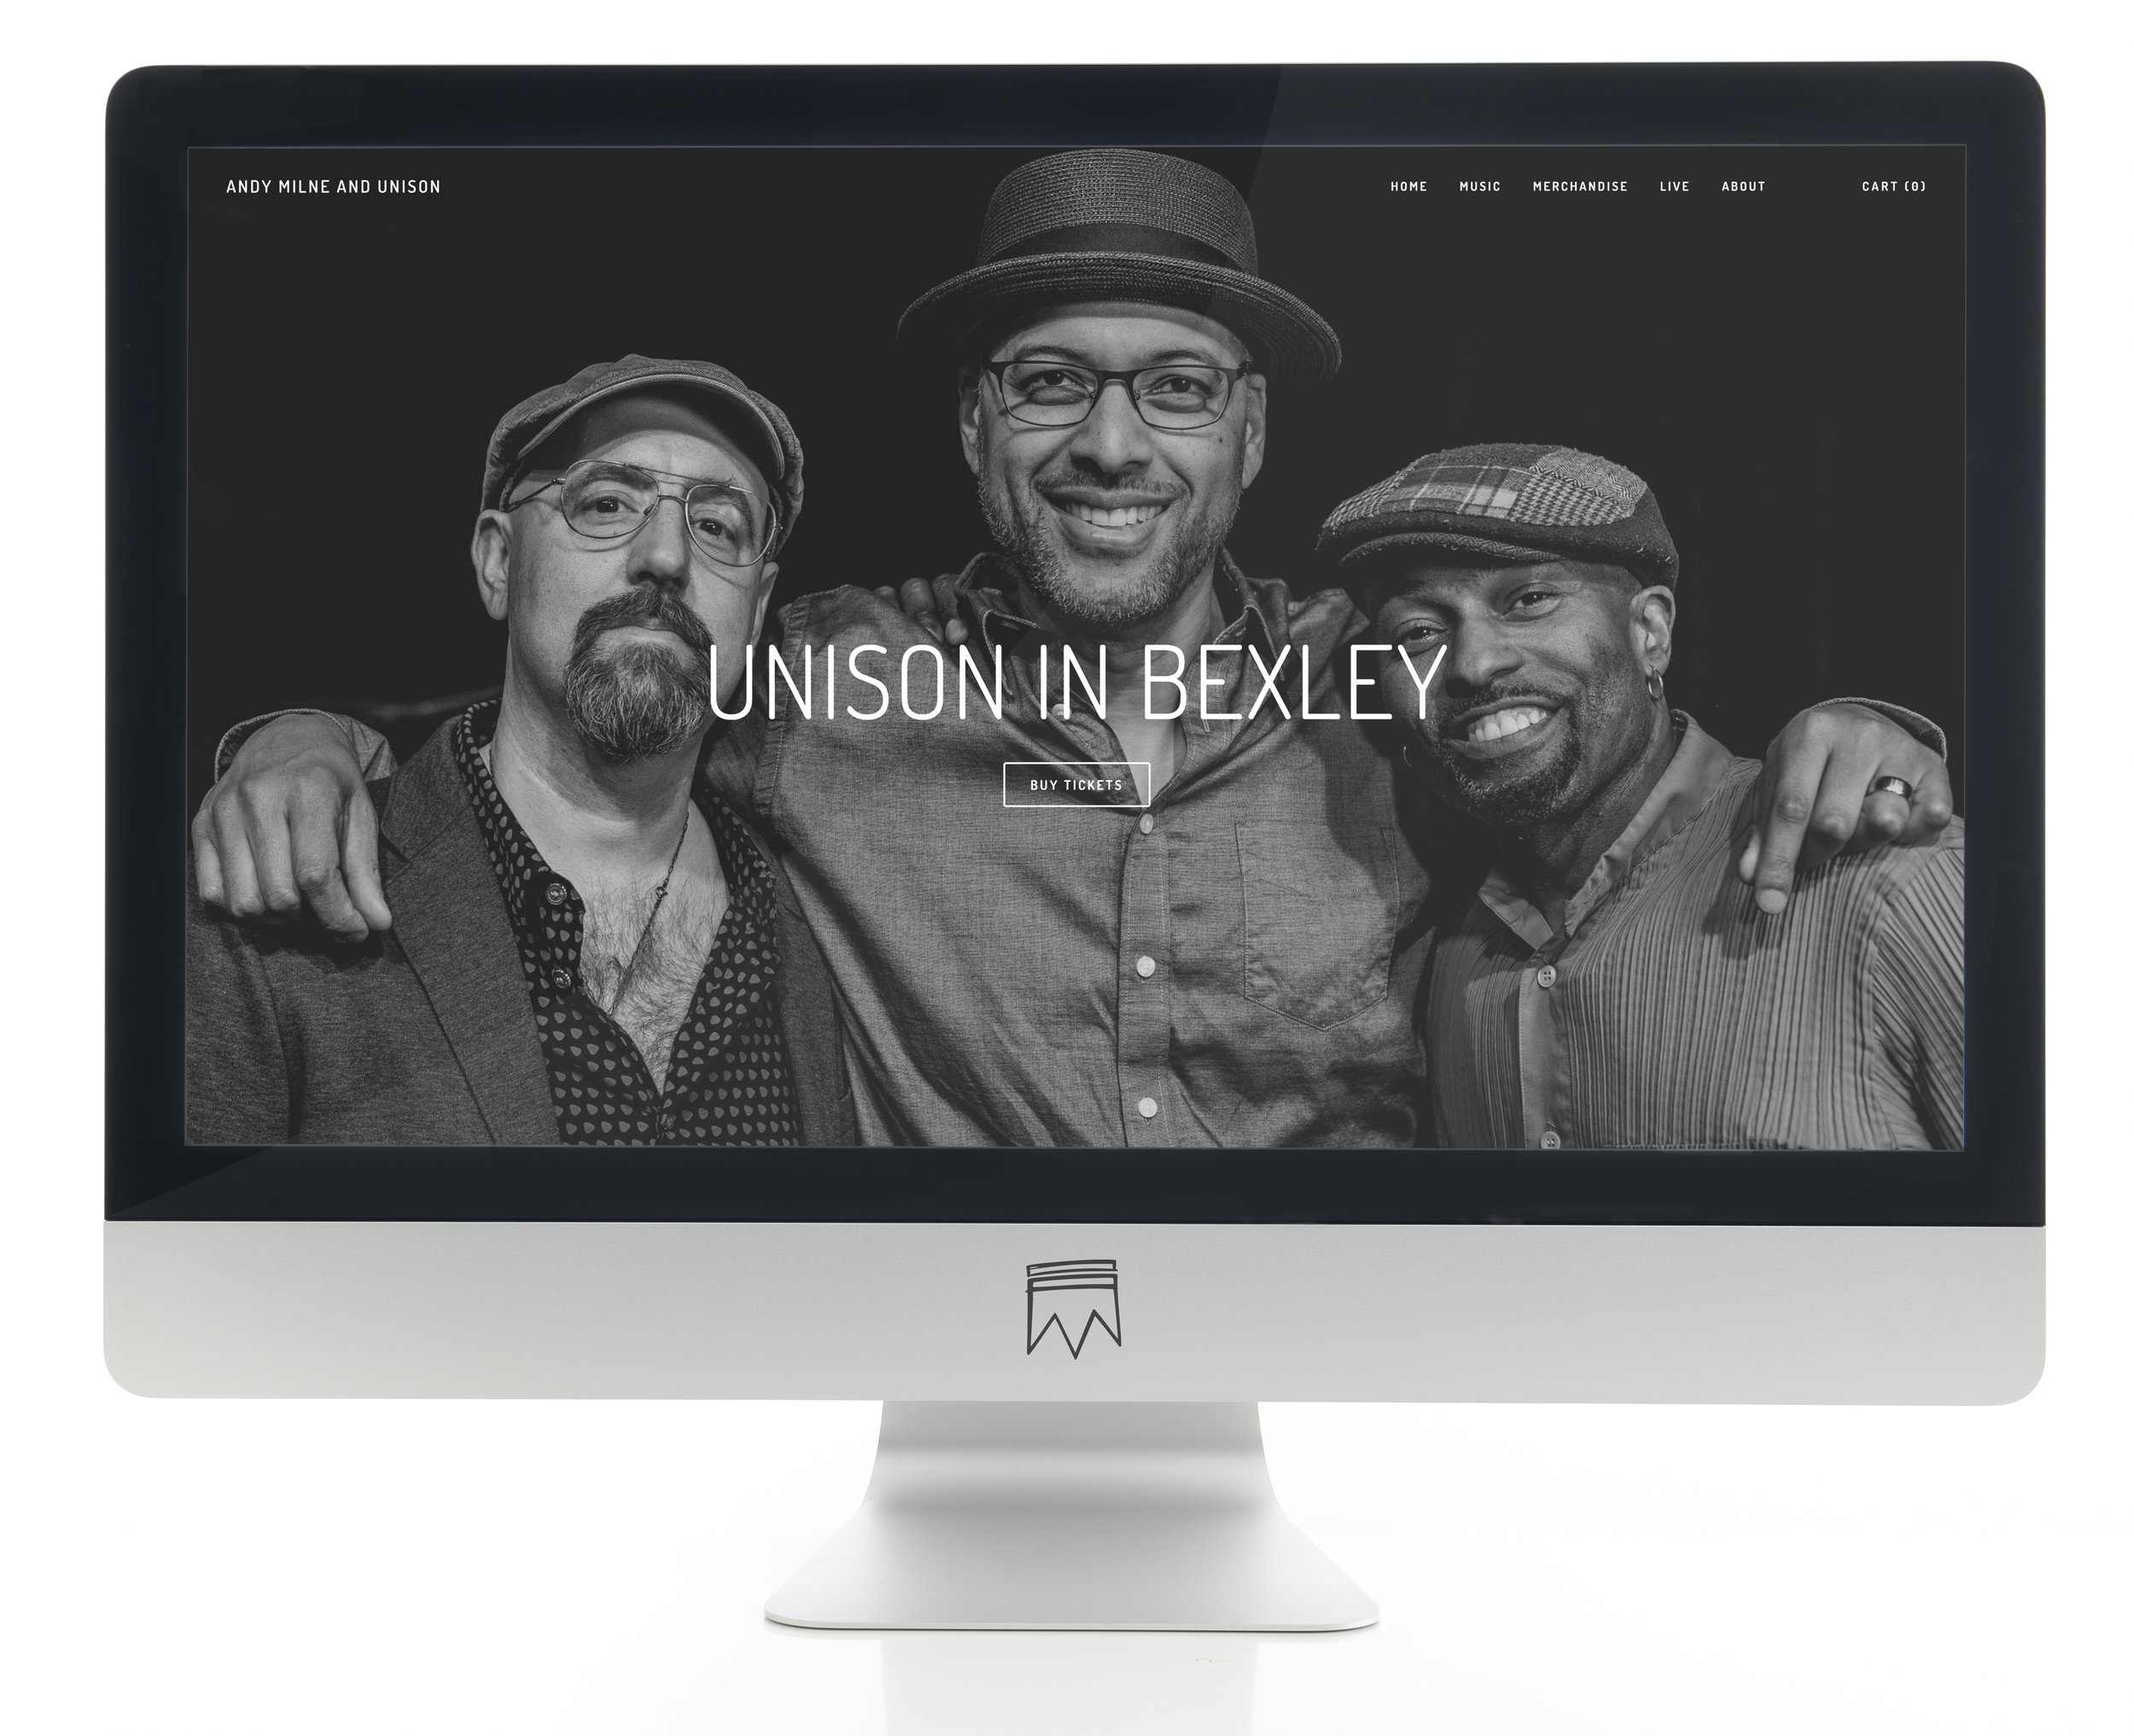 Unison in Bexley - Home Page